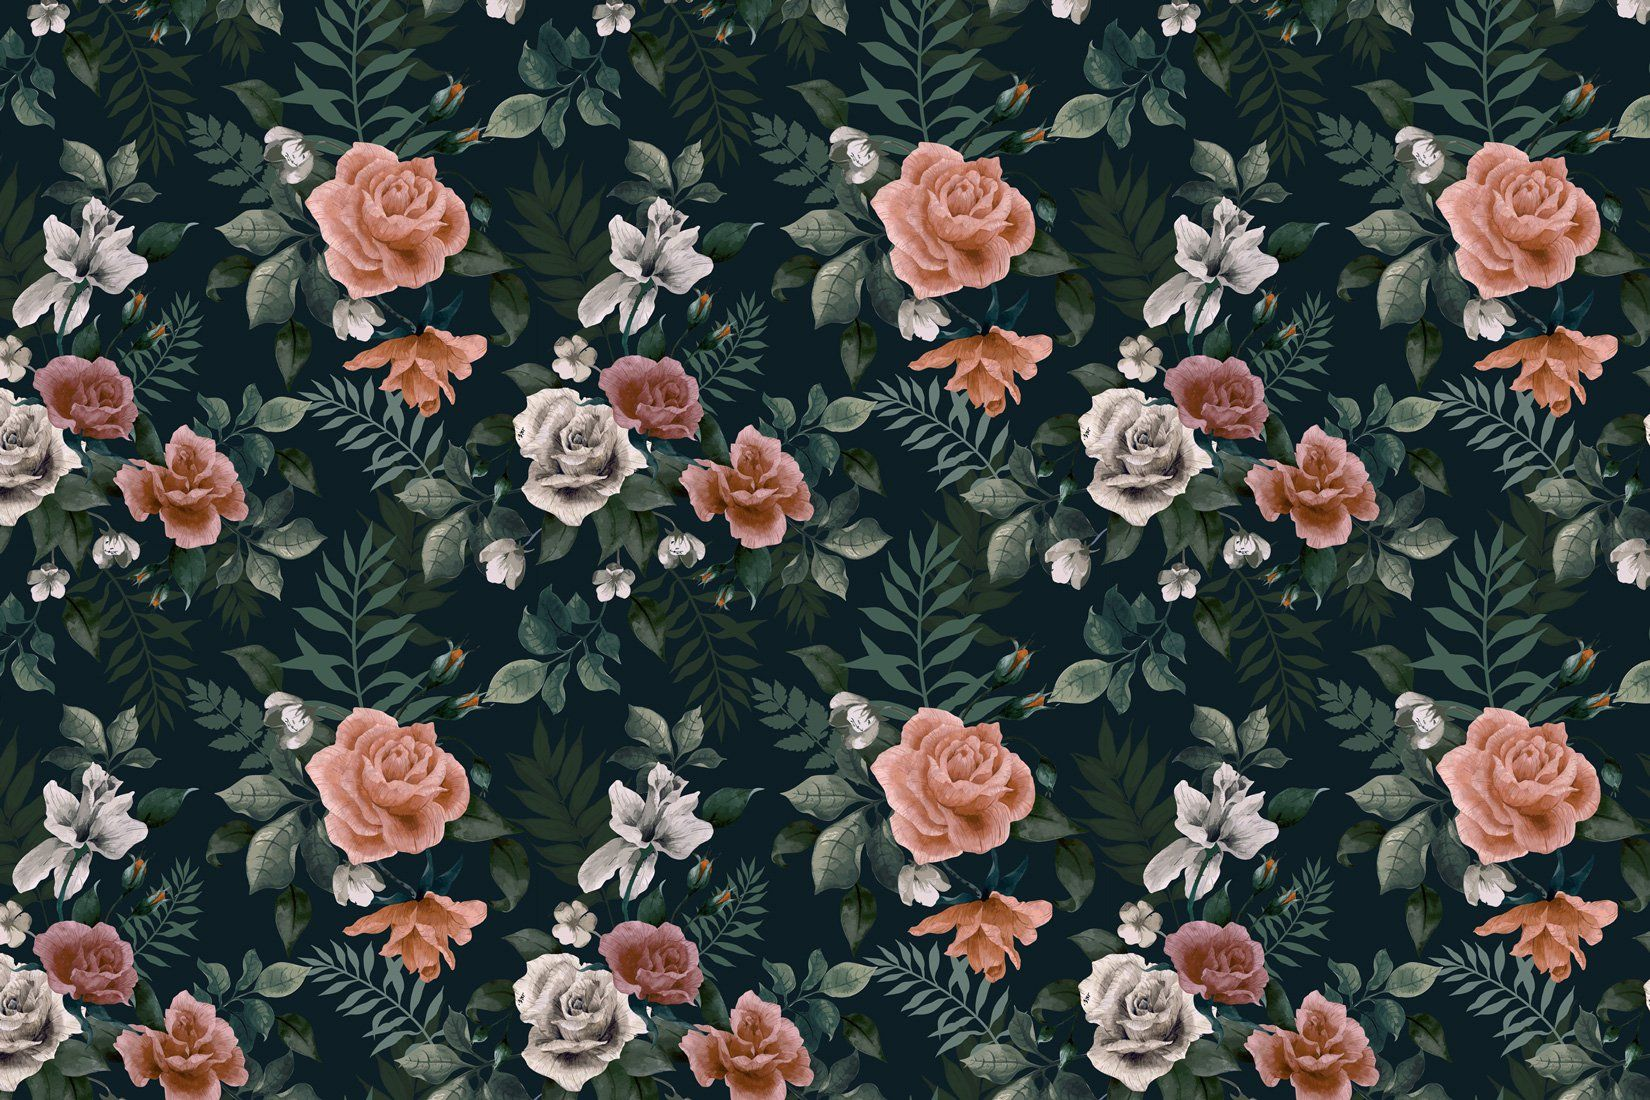 Dark Green And Pink Floral Wall Mural Green Floral Wallpaper